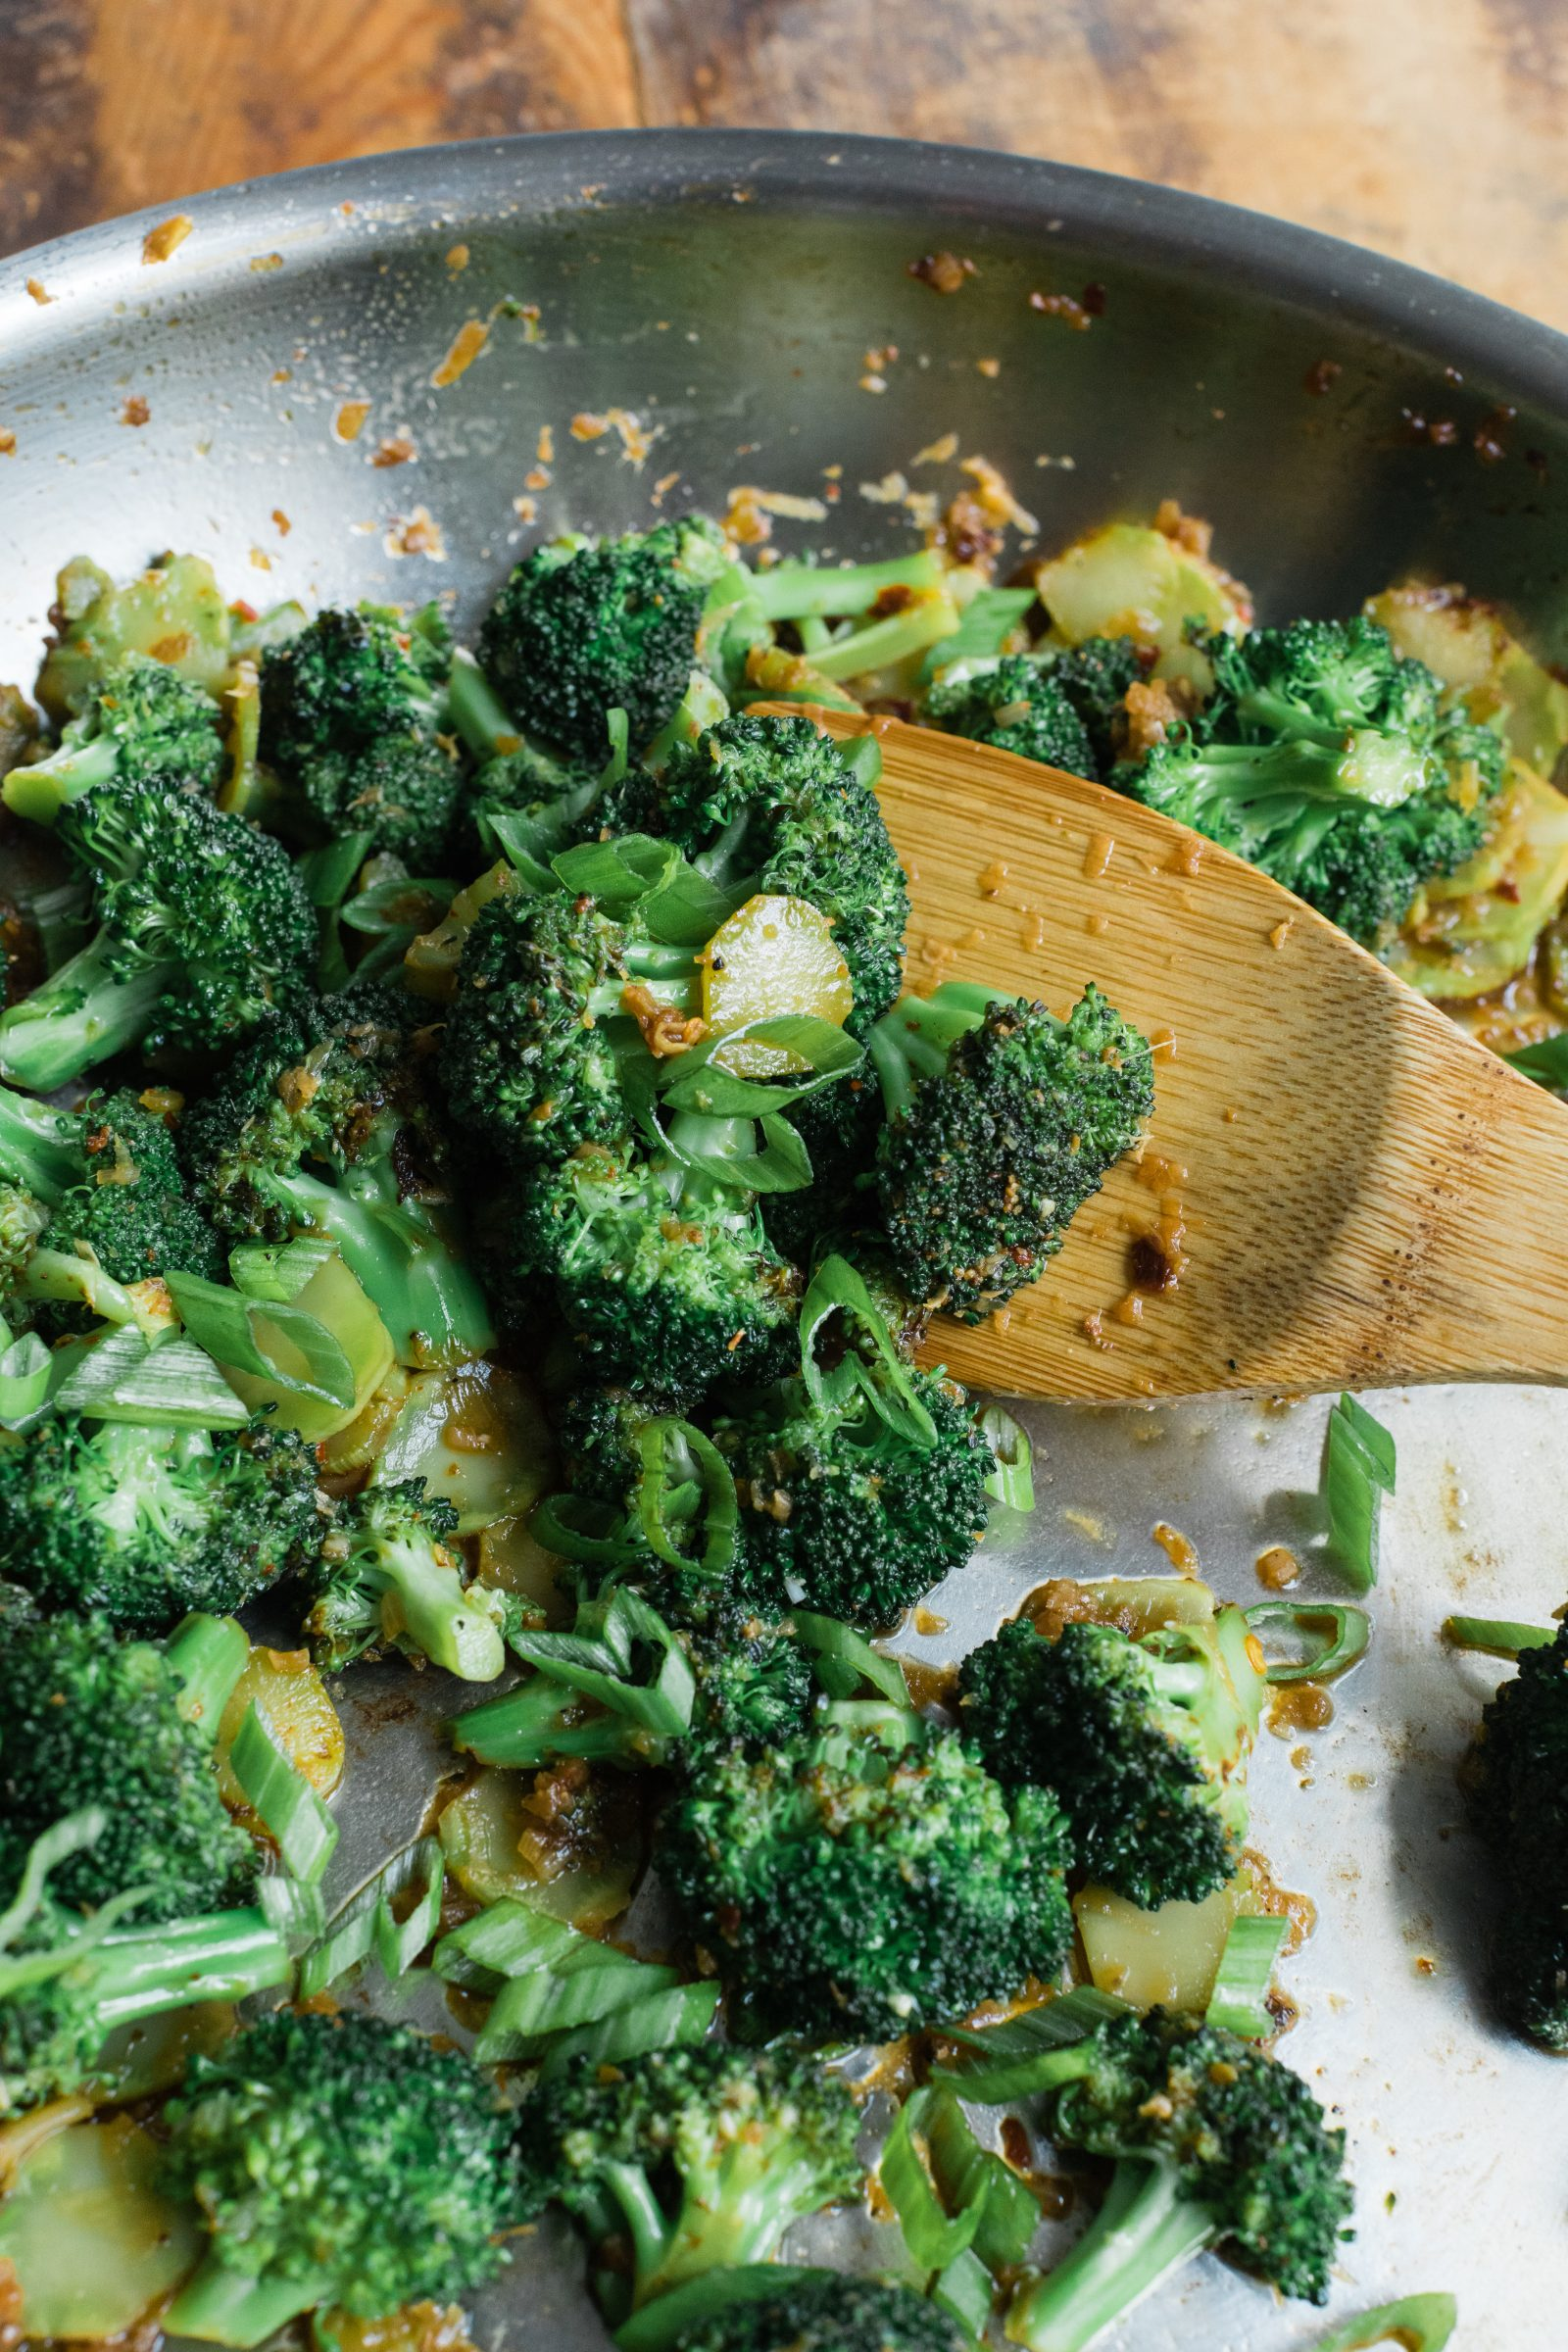 Stir-Fried Broccoli with Sichuan Peppercorns